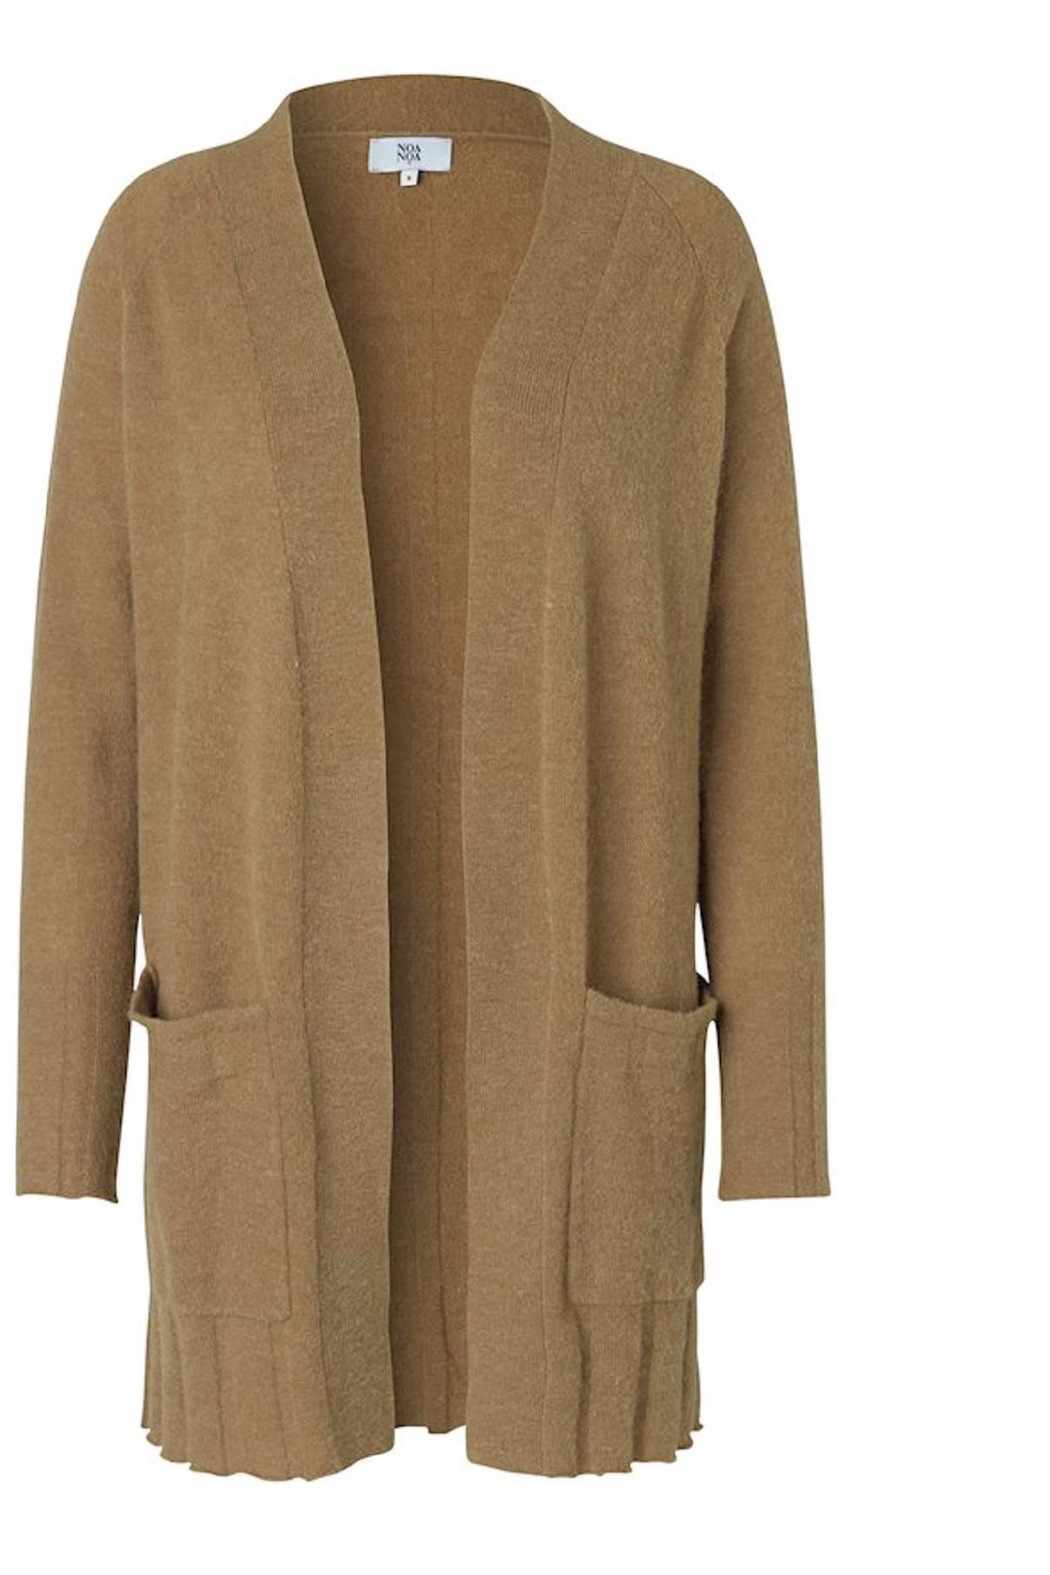 Noa Noa Dull Gold Cardigan - Front Cropped Image